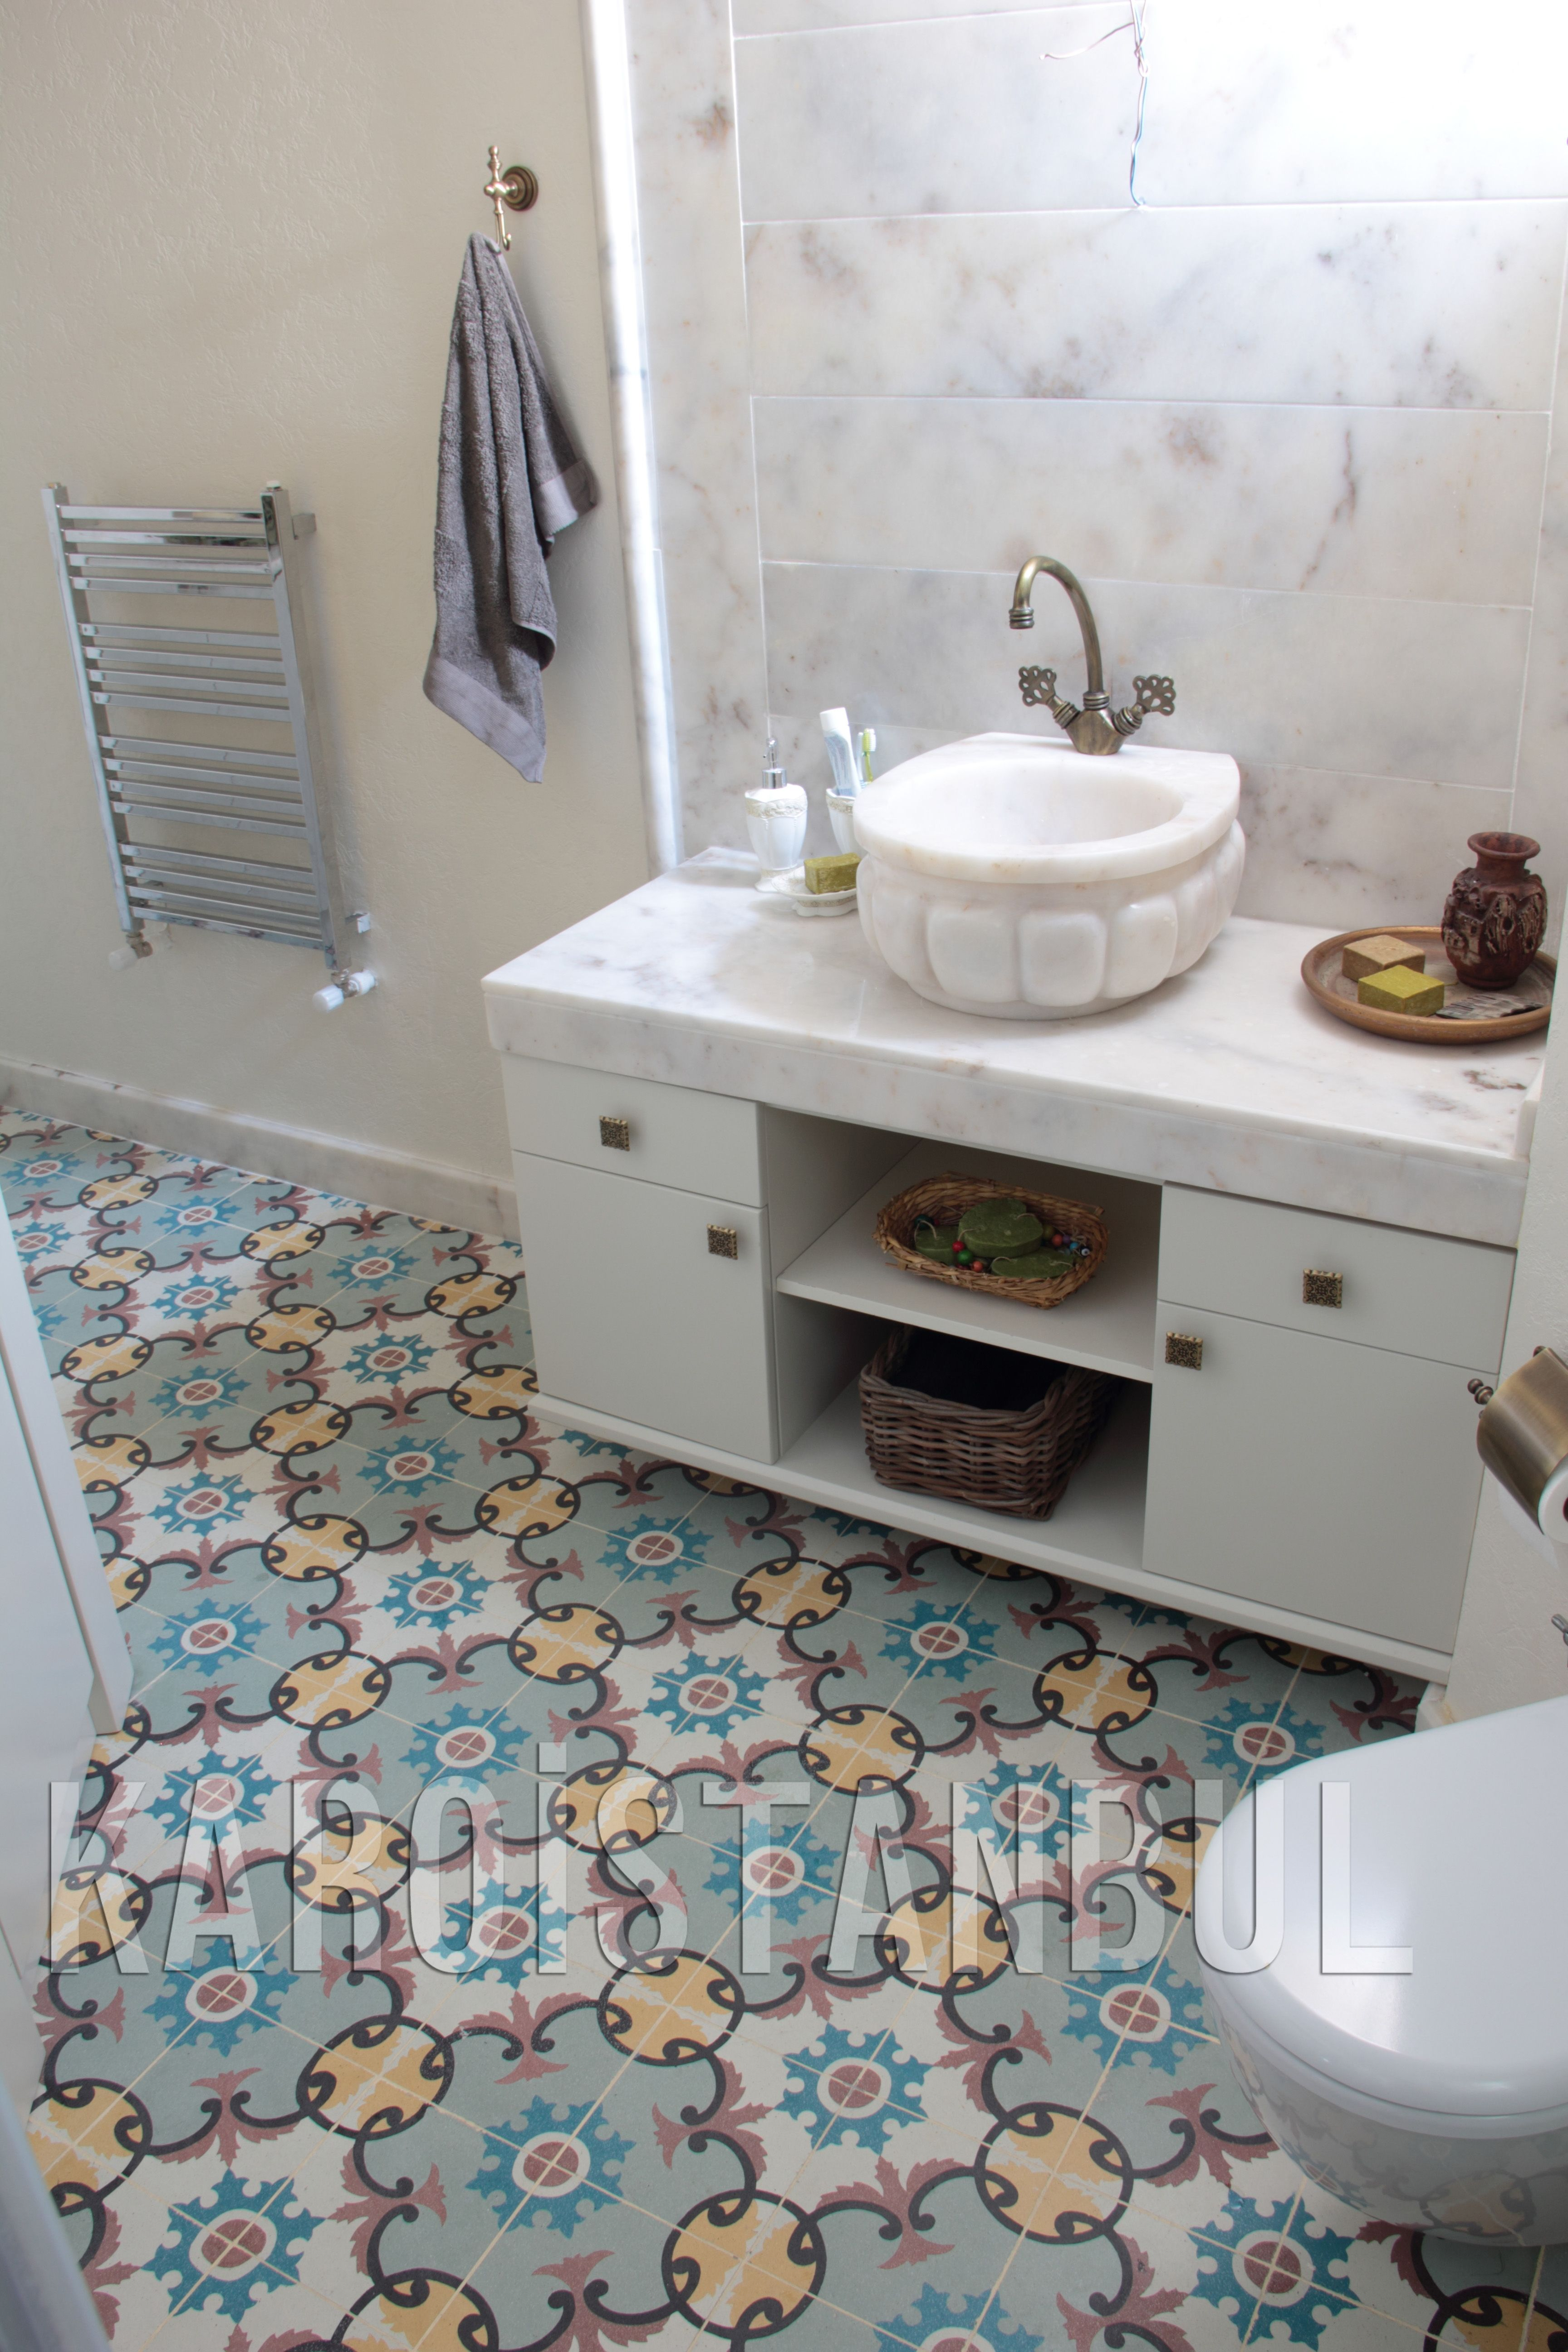 The karoistanbul tiles are entirely handmade they are composed of colorful encaustic tiles nicely set off the cool marble splashback in this neat bathroom dailygadgetfo Images